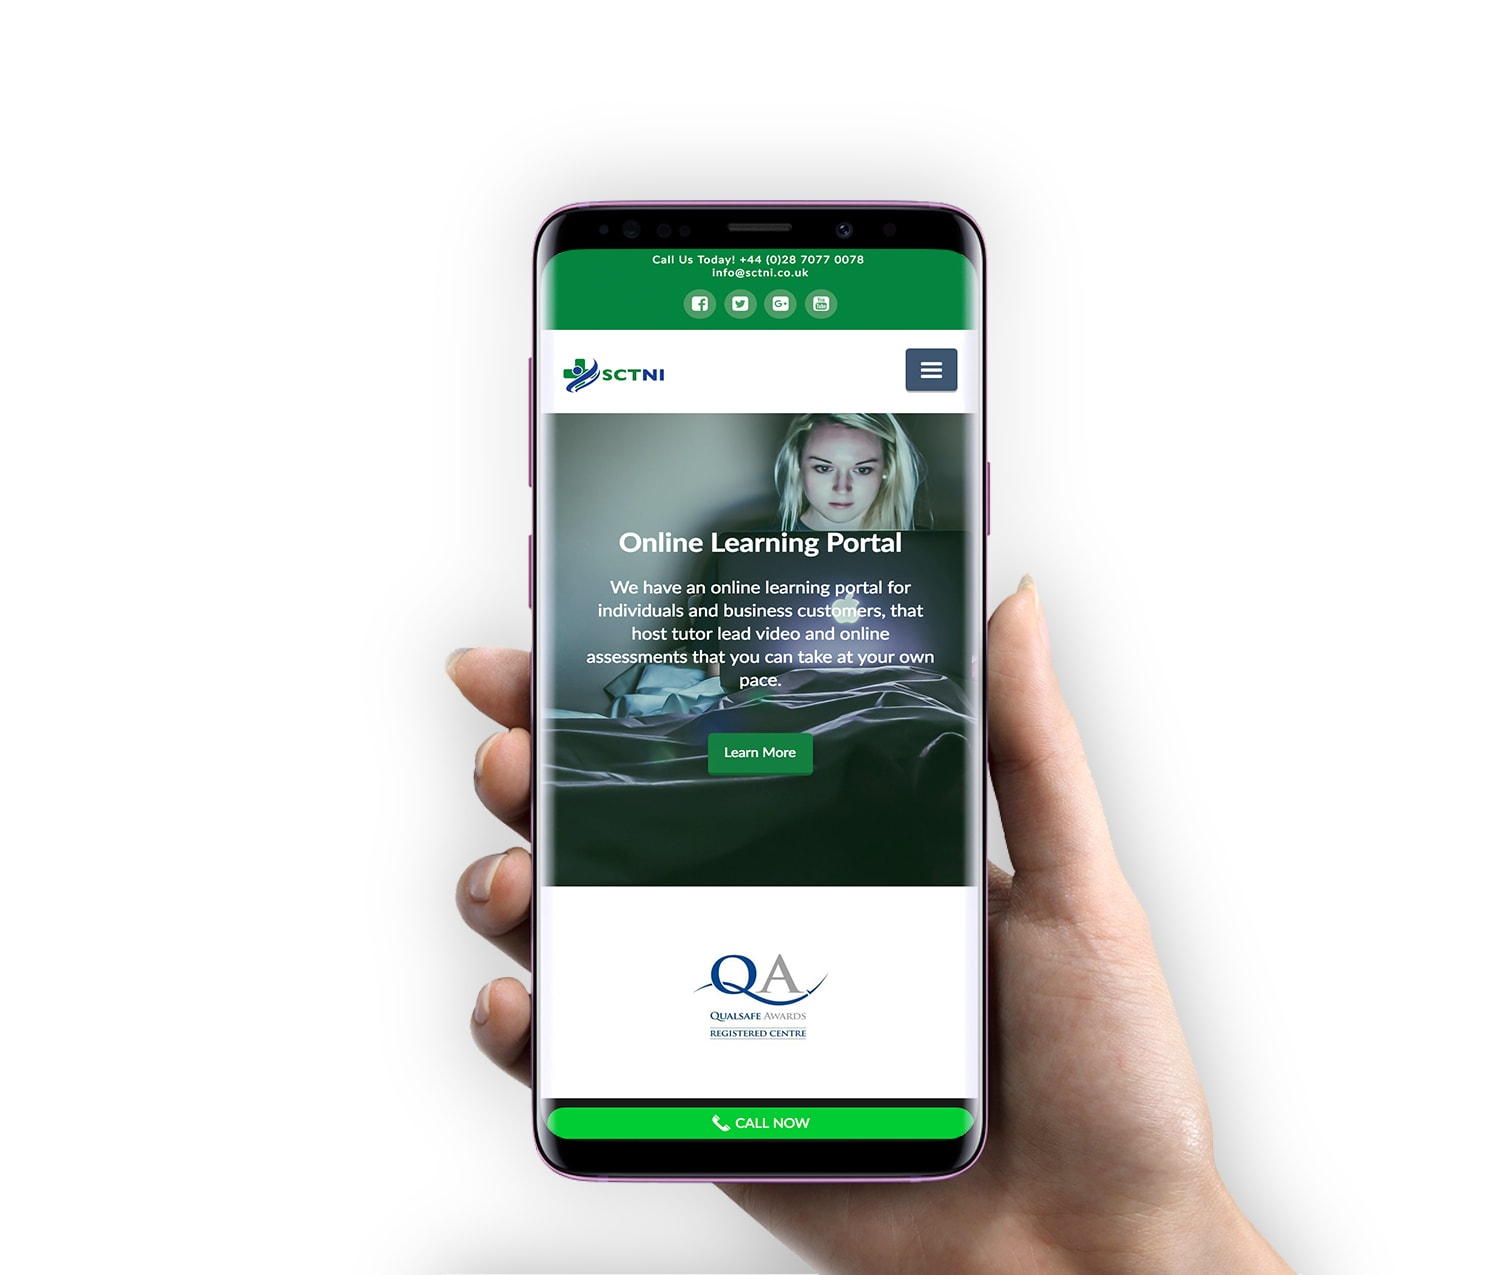 Mobile Friendly Website Design - SCTNI